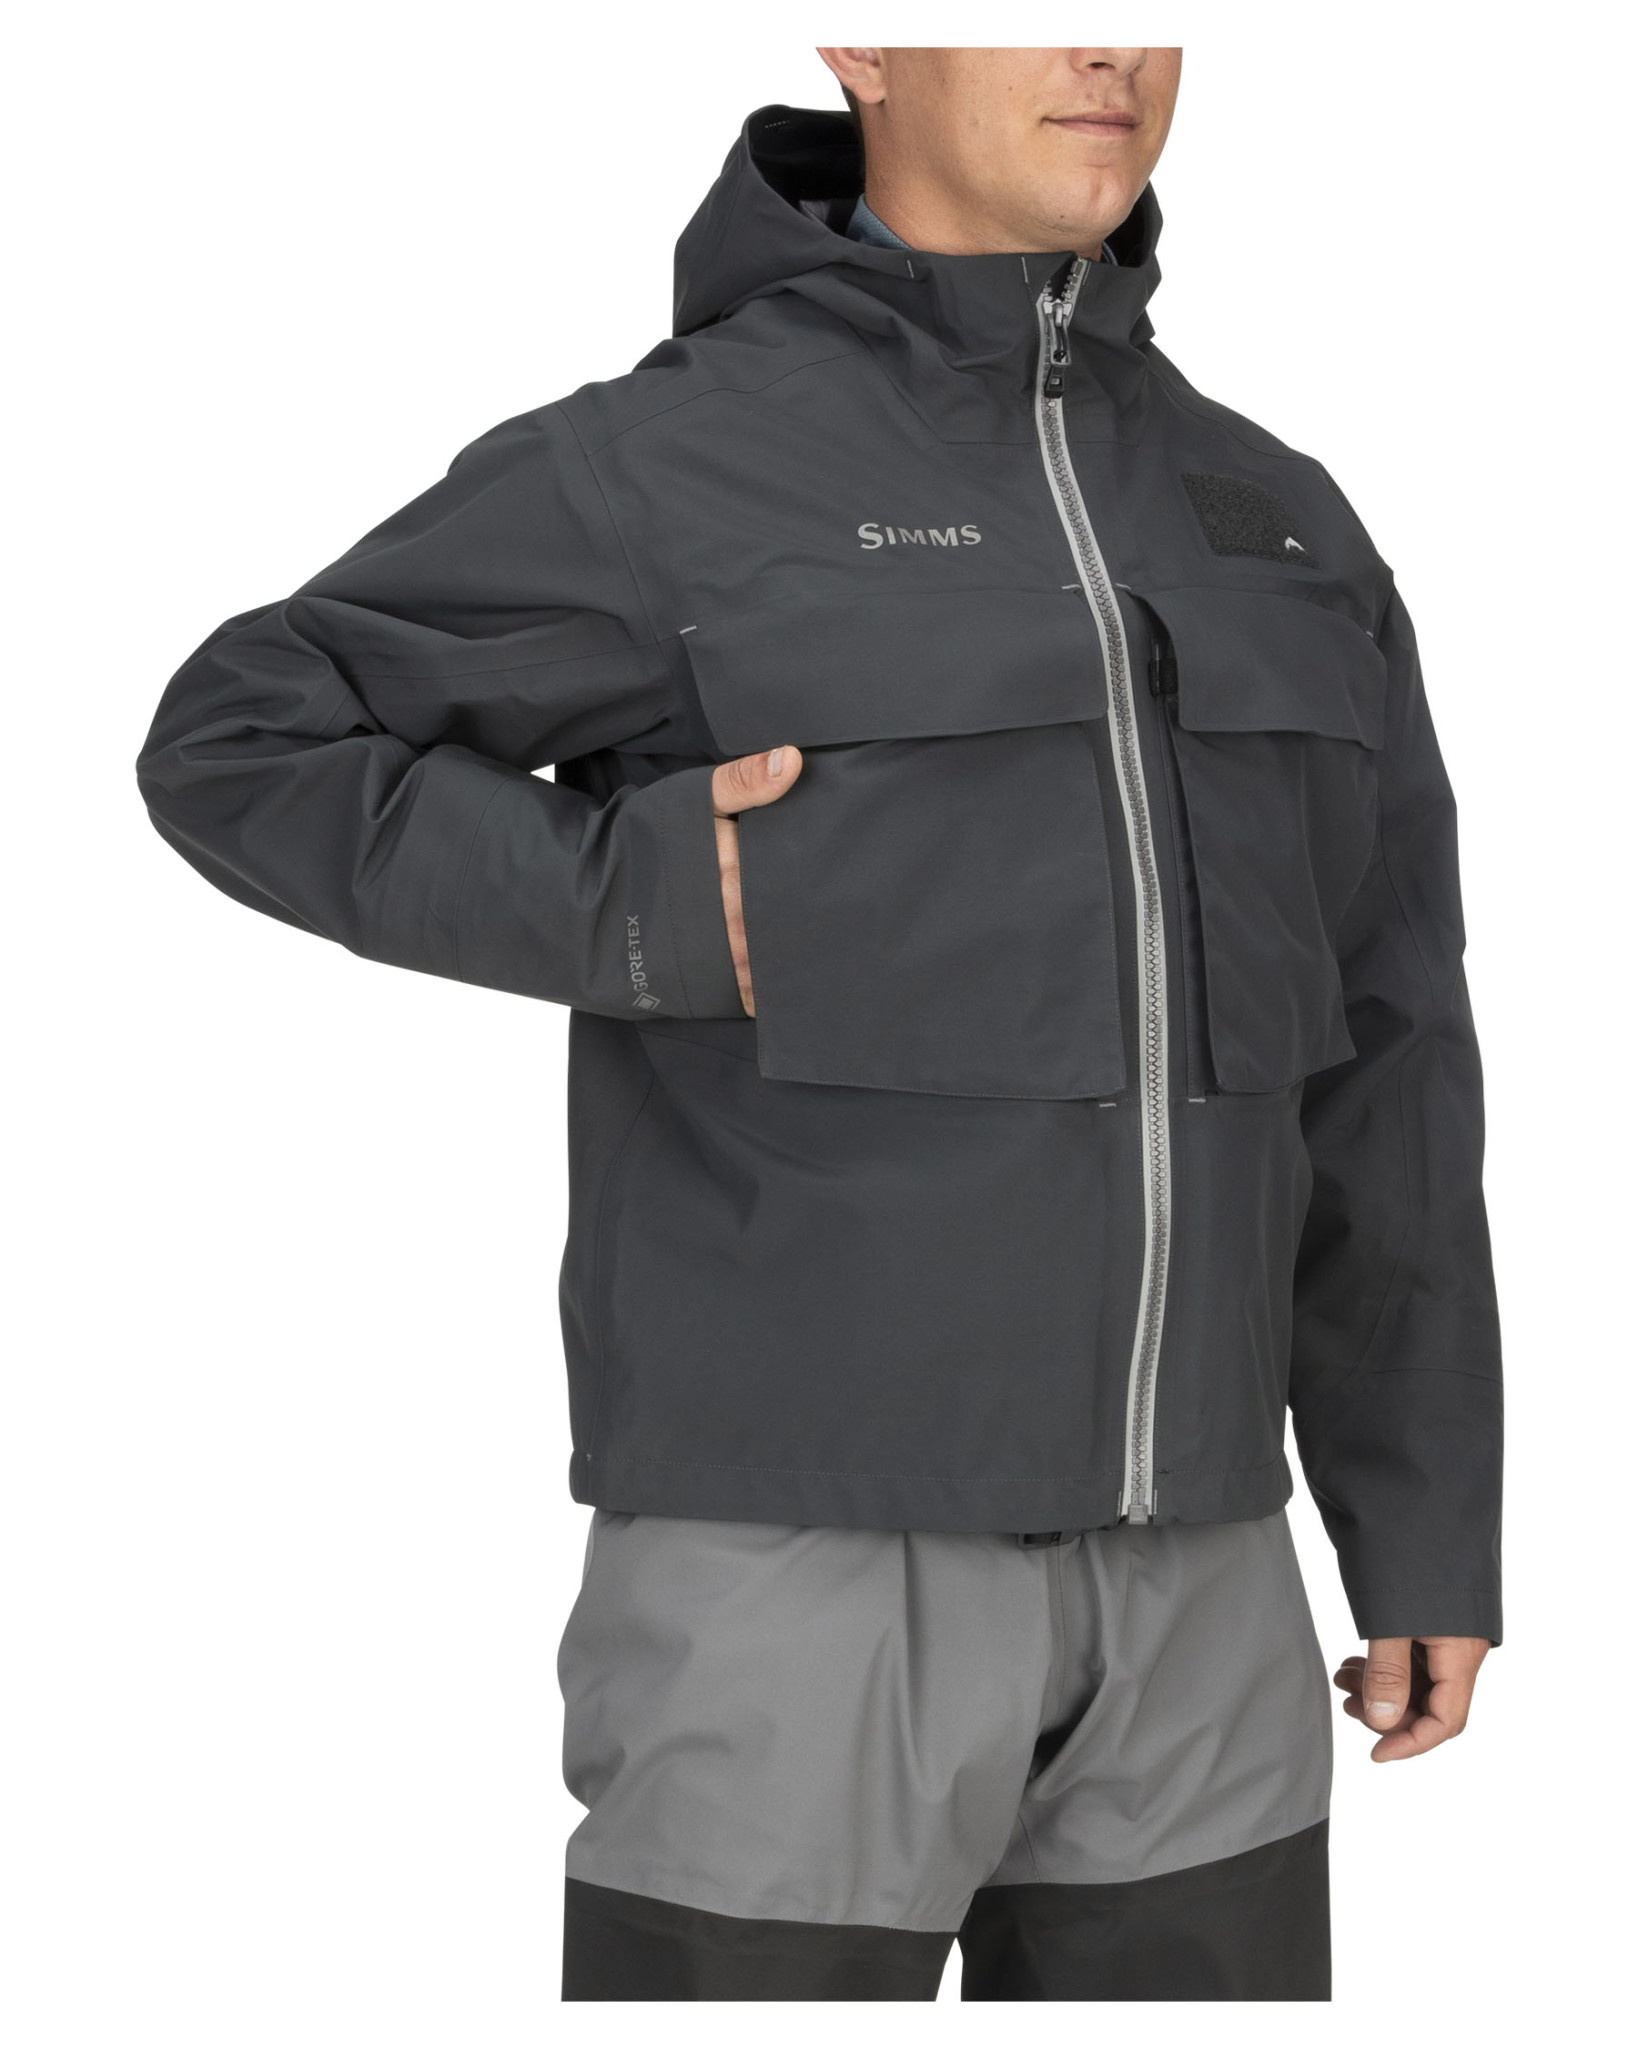 Simms Guide Classic Wading Jacket